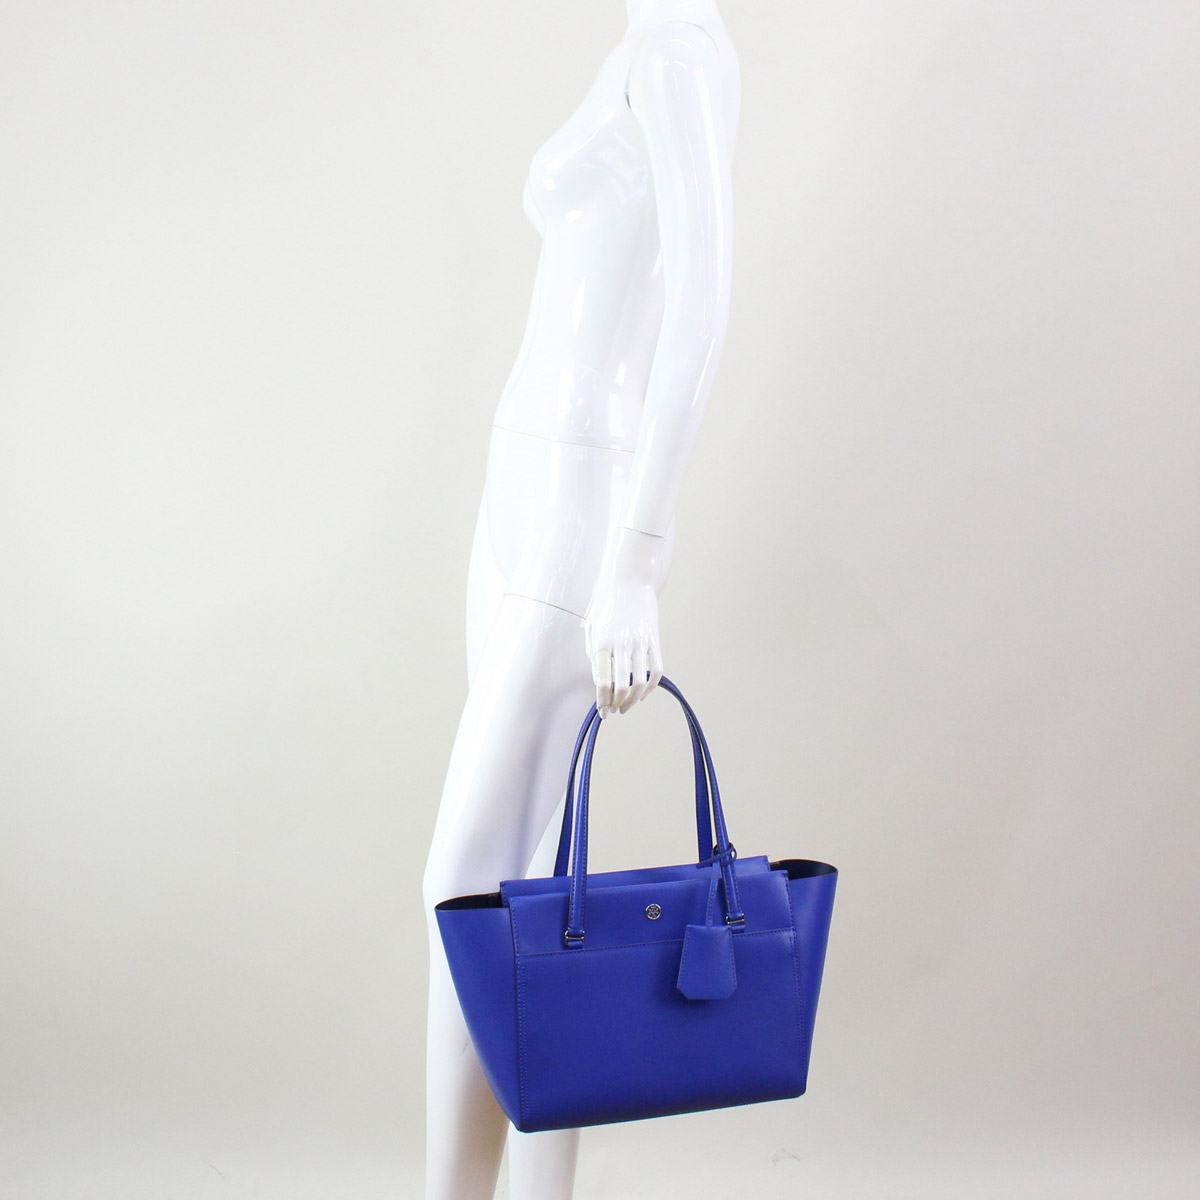 91ef60eb260 ... Tolly Birch (TORY BURCH) PARKER parka tote bag 37744 449 SONGBIRD blue  system